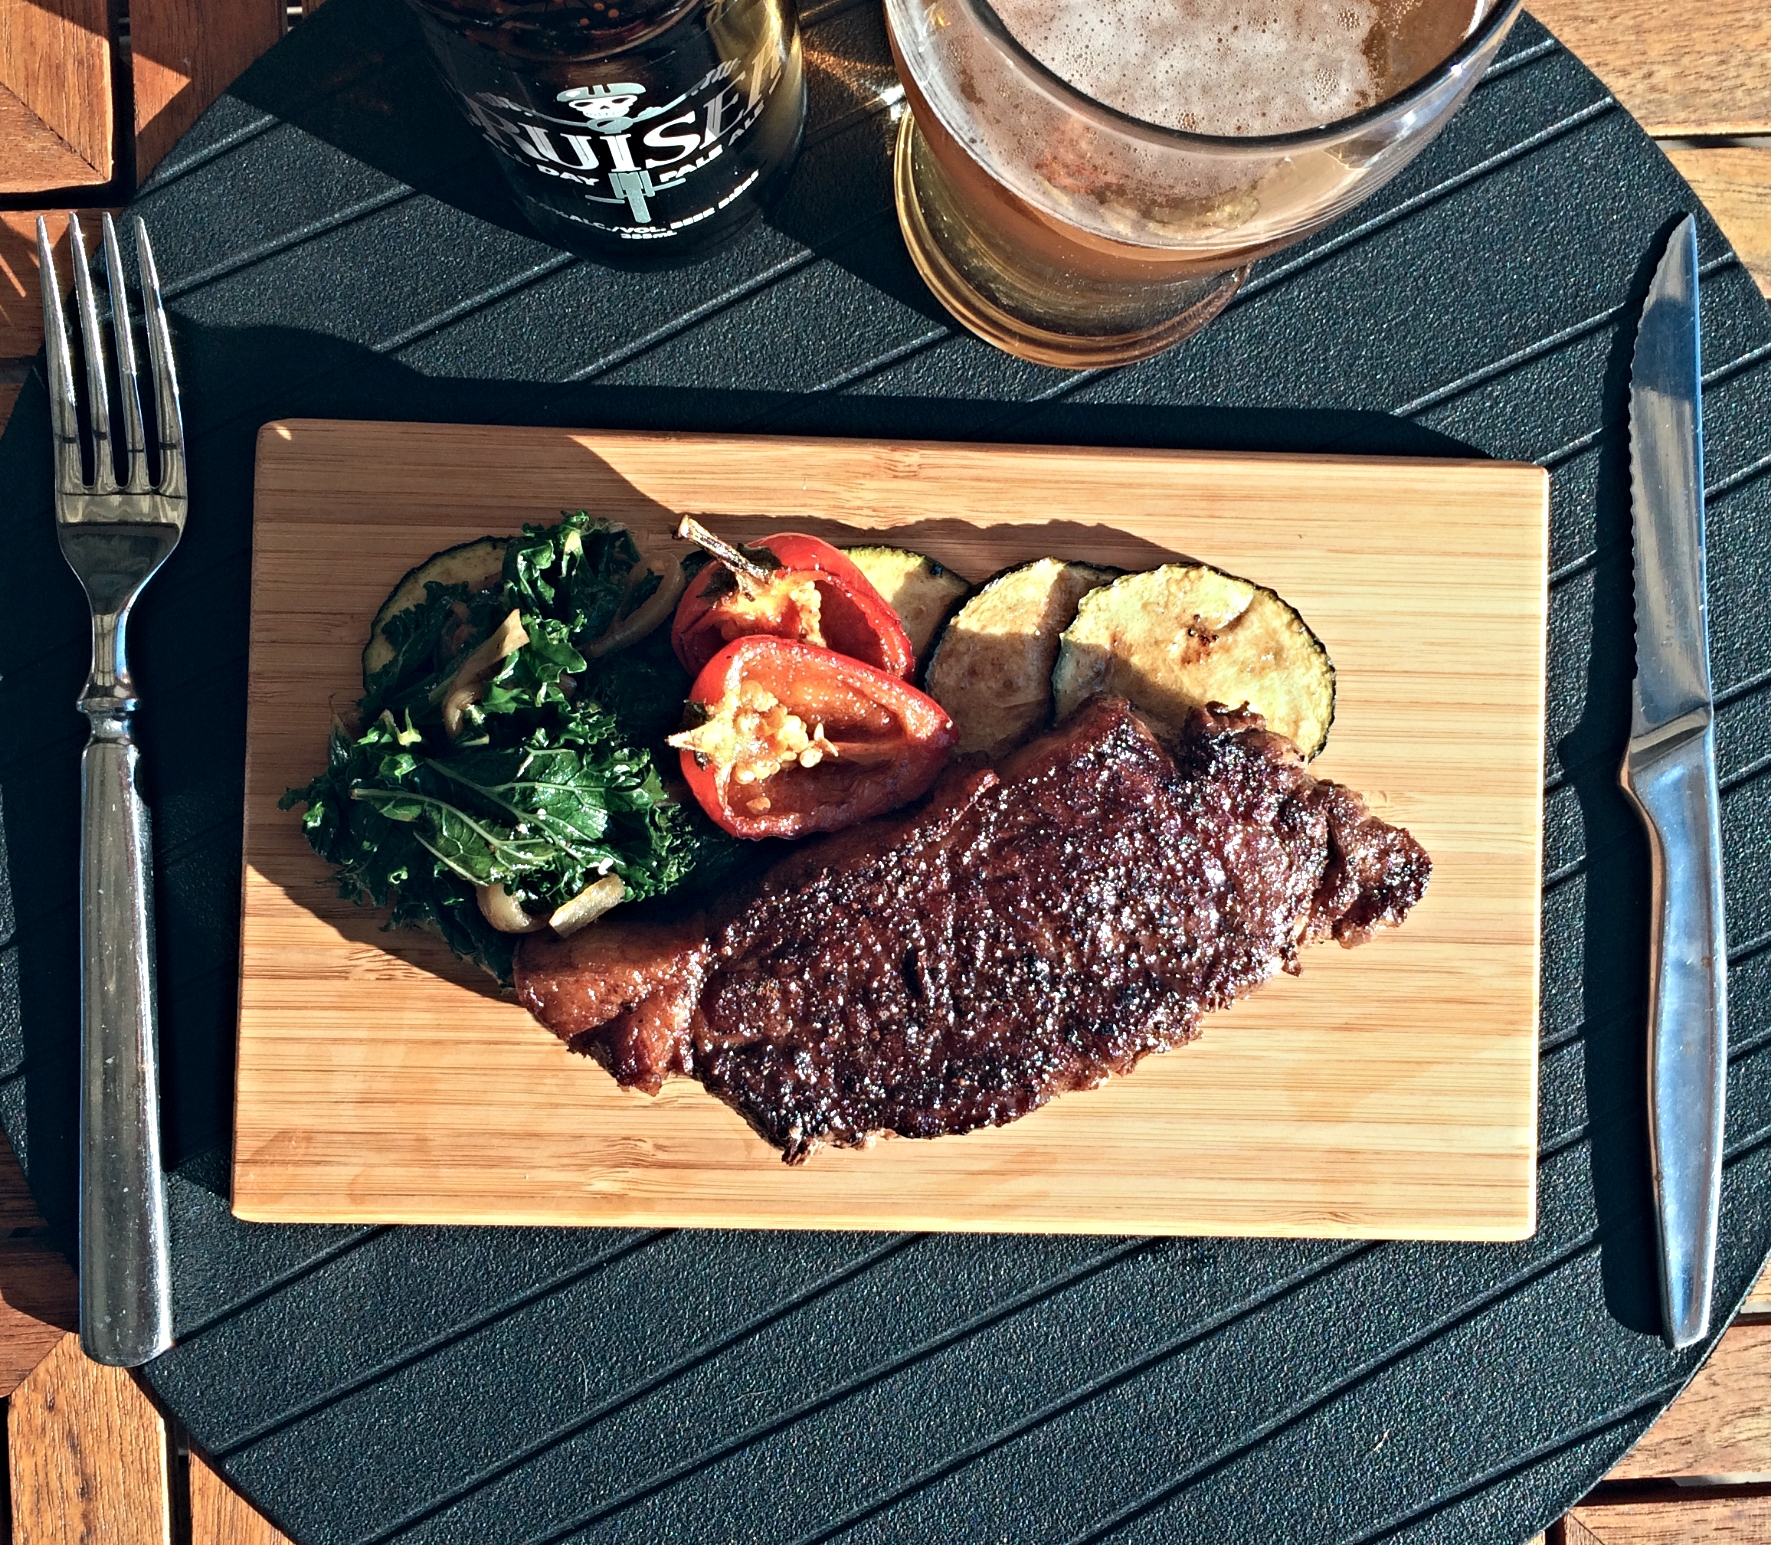 Chili Scented Pan Seared Sirloin Steak, with braised kale, and sautéed zucchini